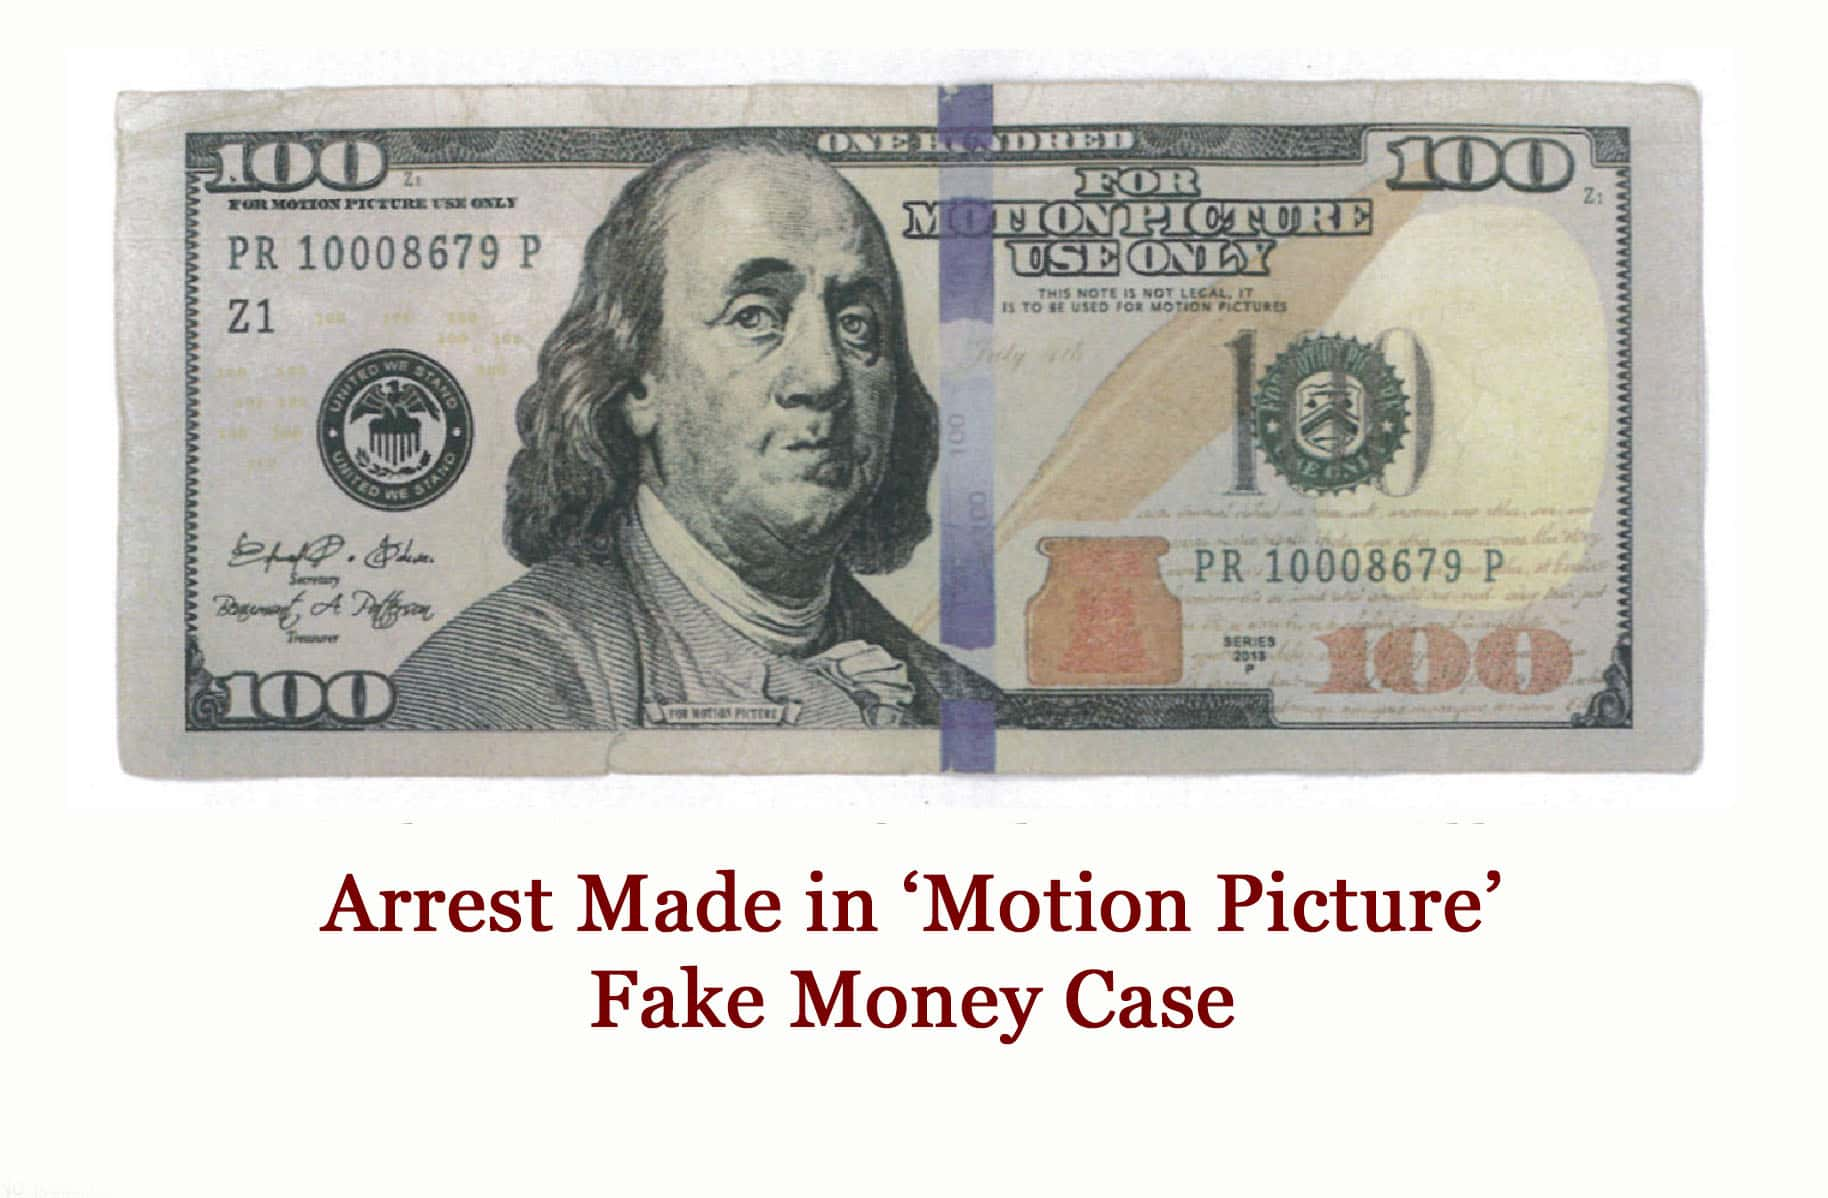 Arrest made in fake 39motion picture39 money case moody on the market for Fake money images